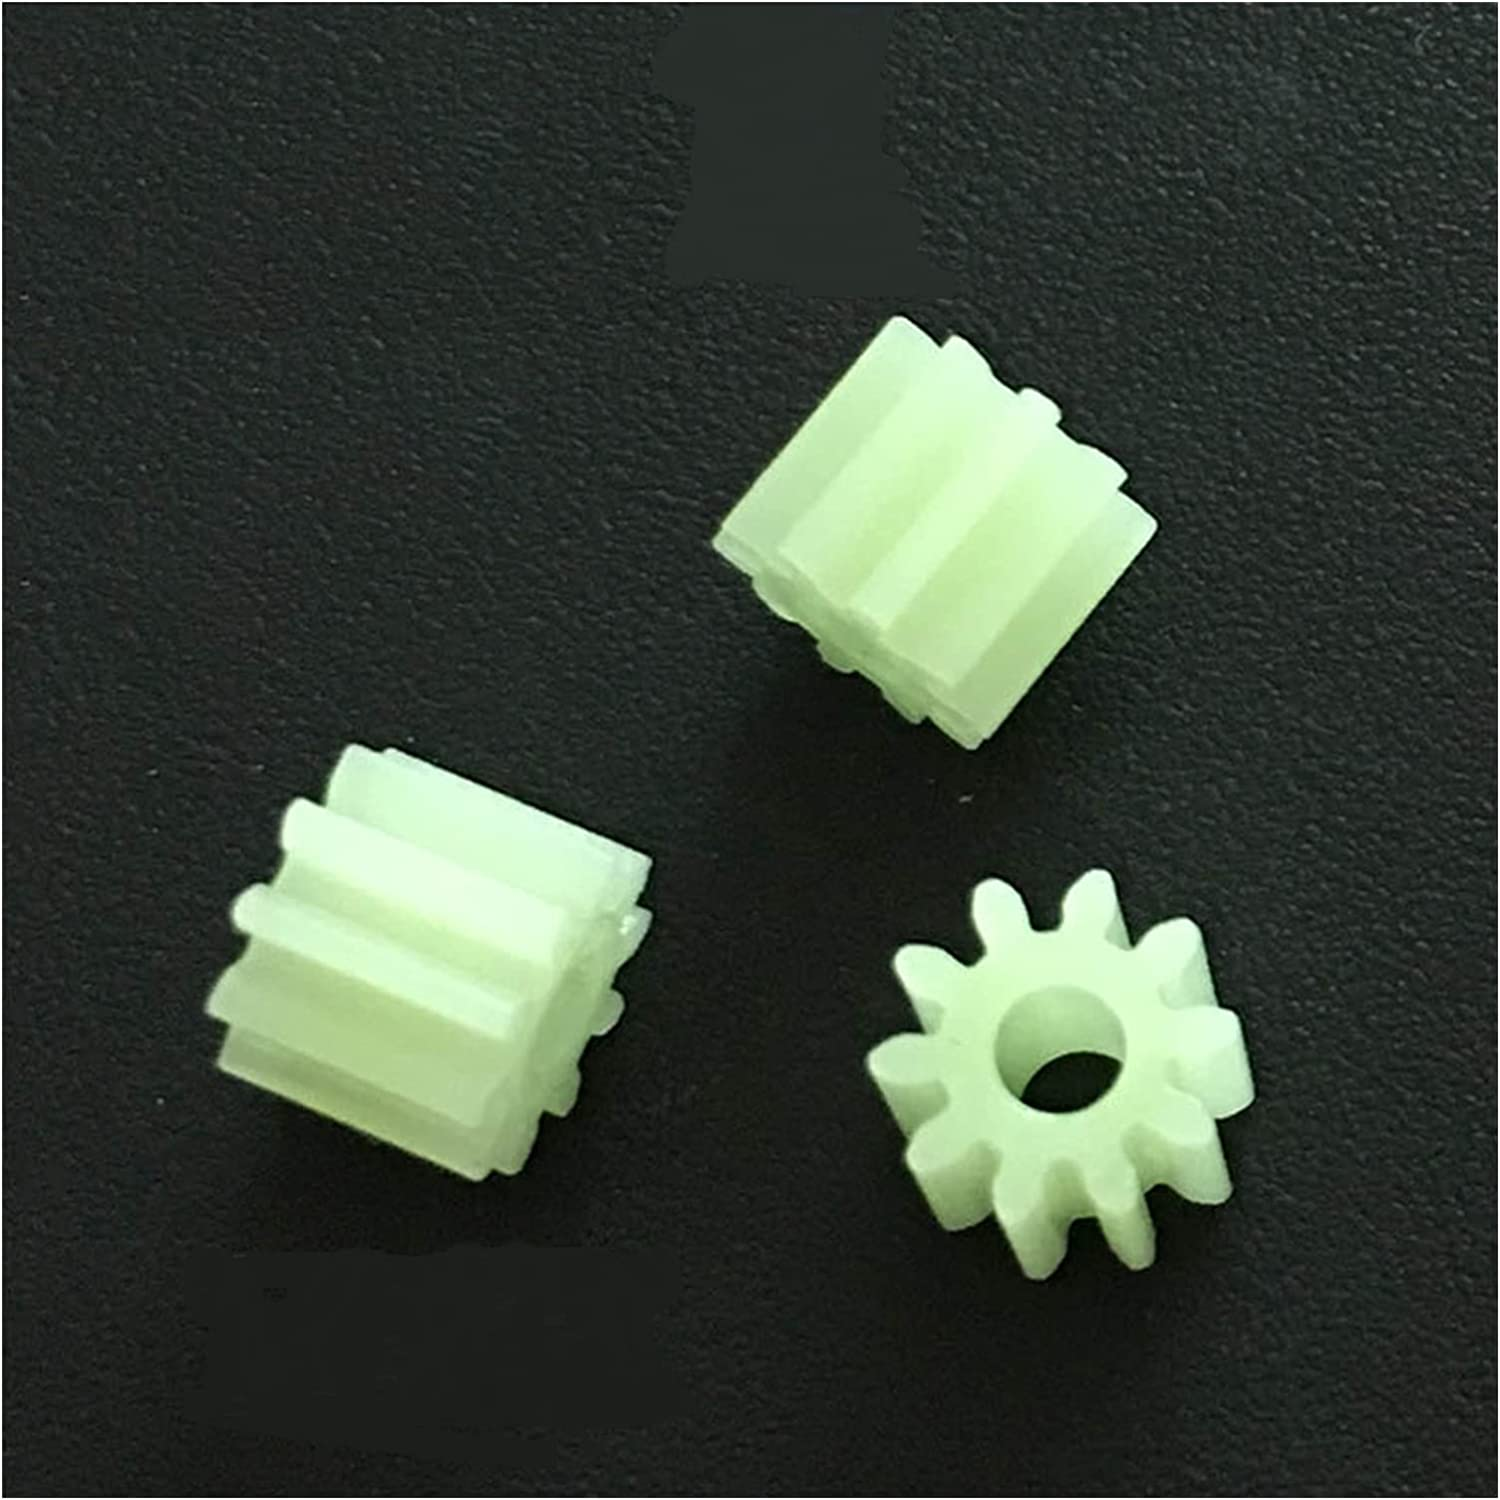 TONGCHAO Tchaogr Max Our shop OFFers the best service 57% OFF 102B 0.5M Gears 10 Loose Teeth 2mm Pom Pl Shaft